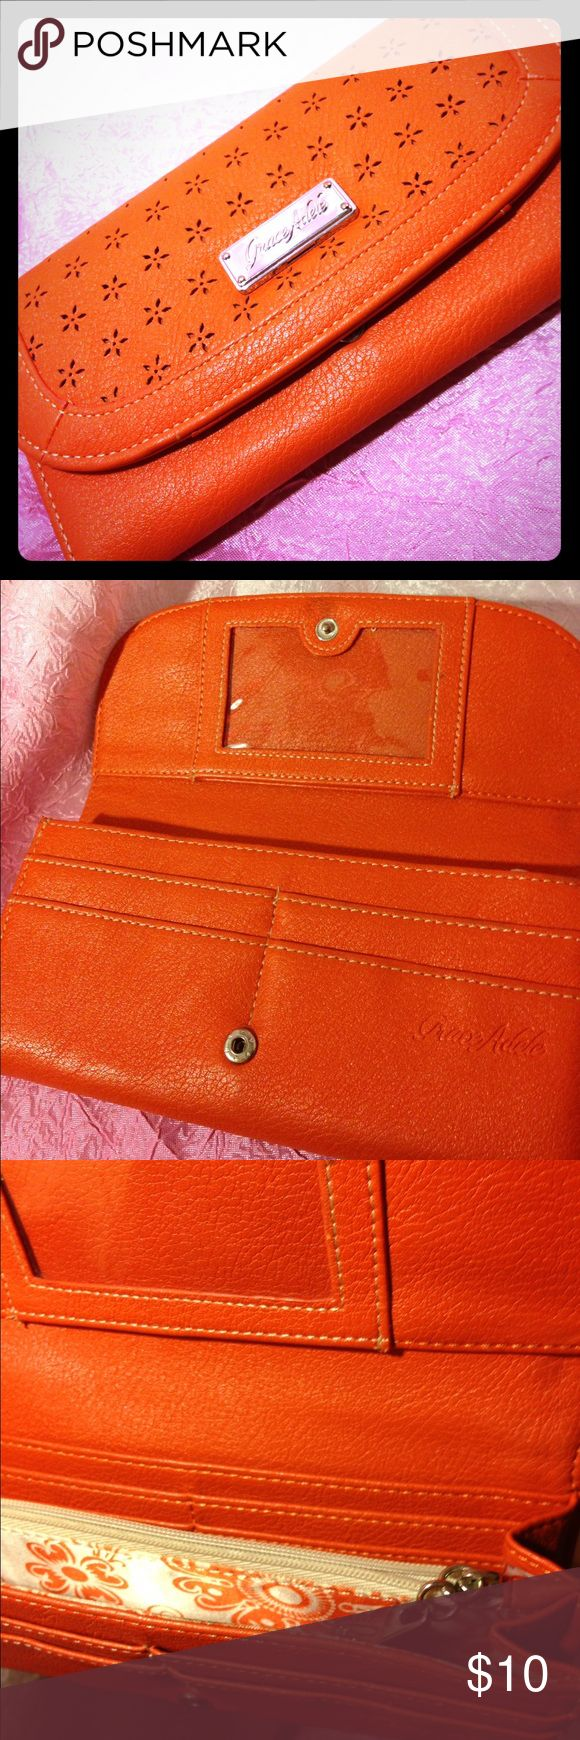 Grace Adele Wallet Tangerine colored Grace Adele full sized new wallet in excellent condition! grace adele Bags Wallets